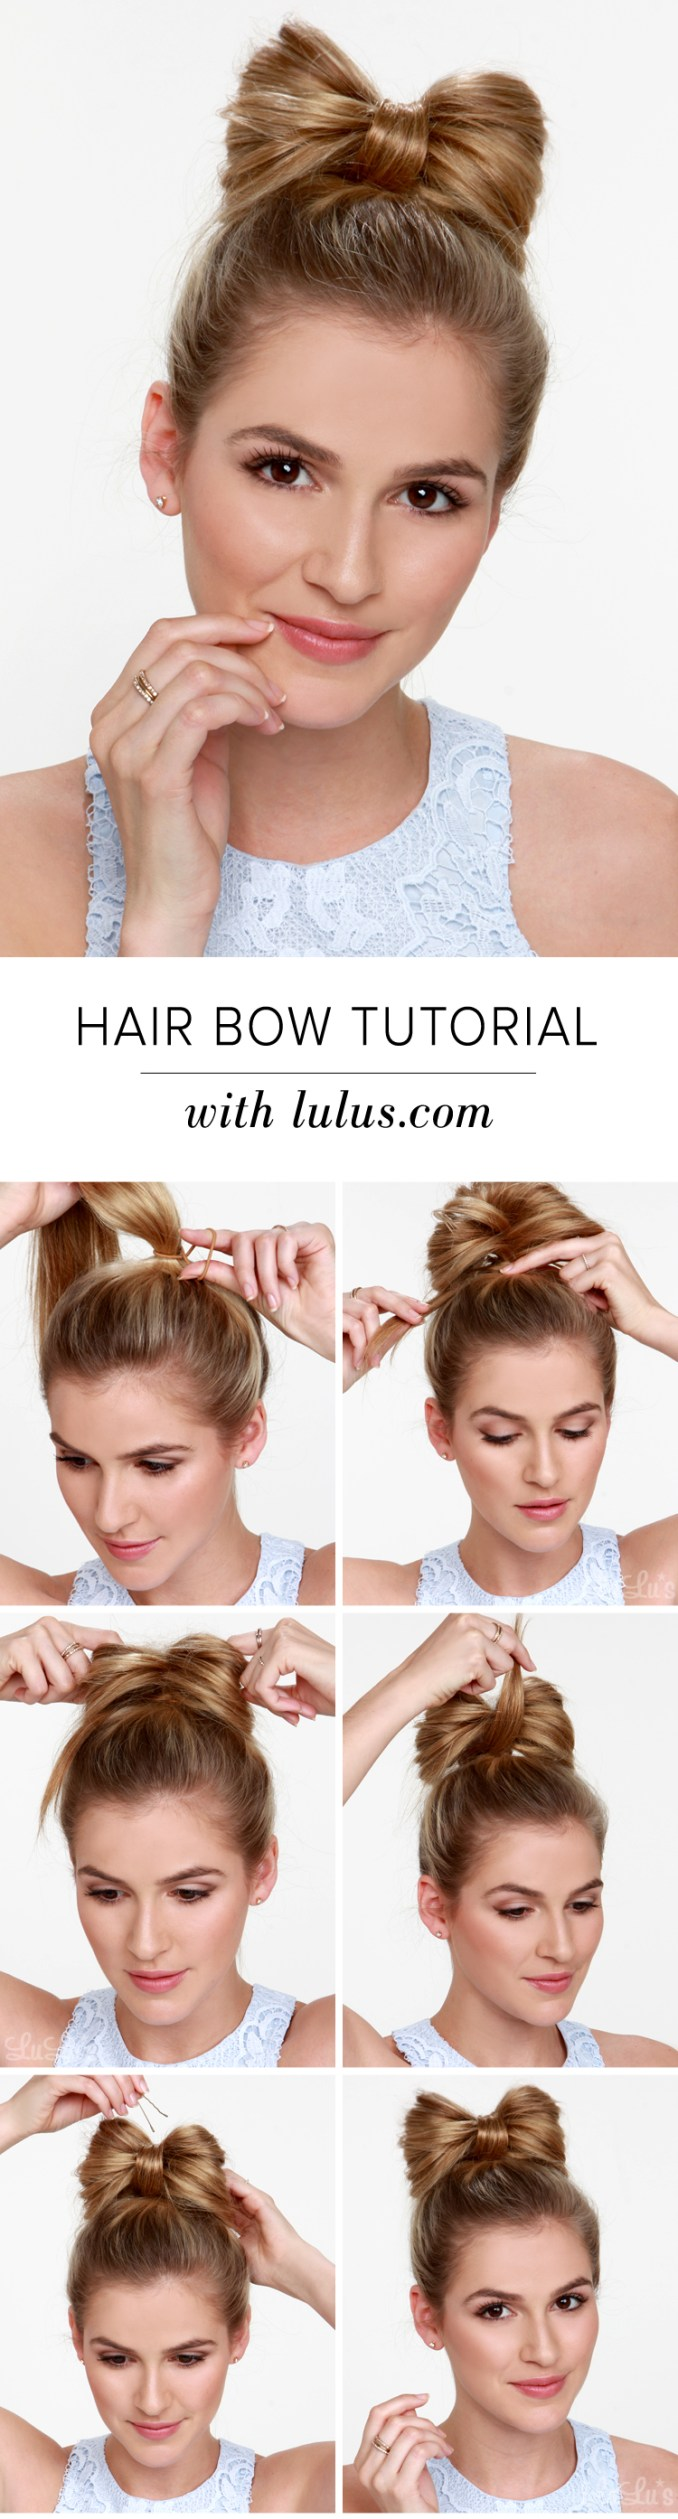 lulus how-to: hair bow tutorial - lulus fashion blog